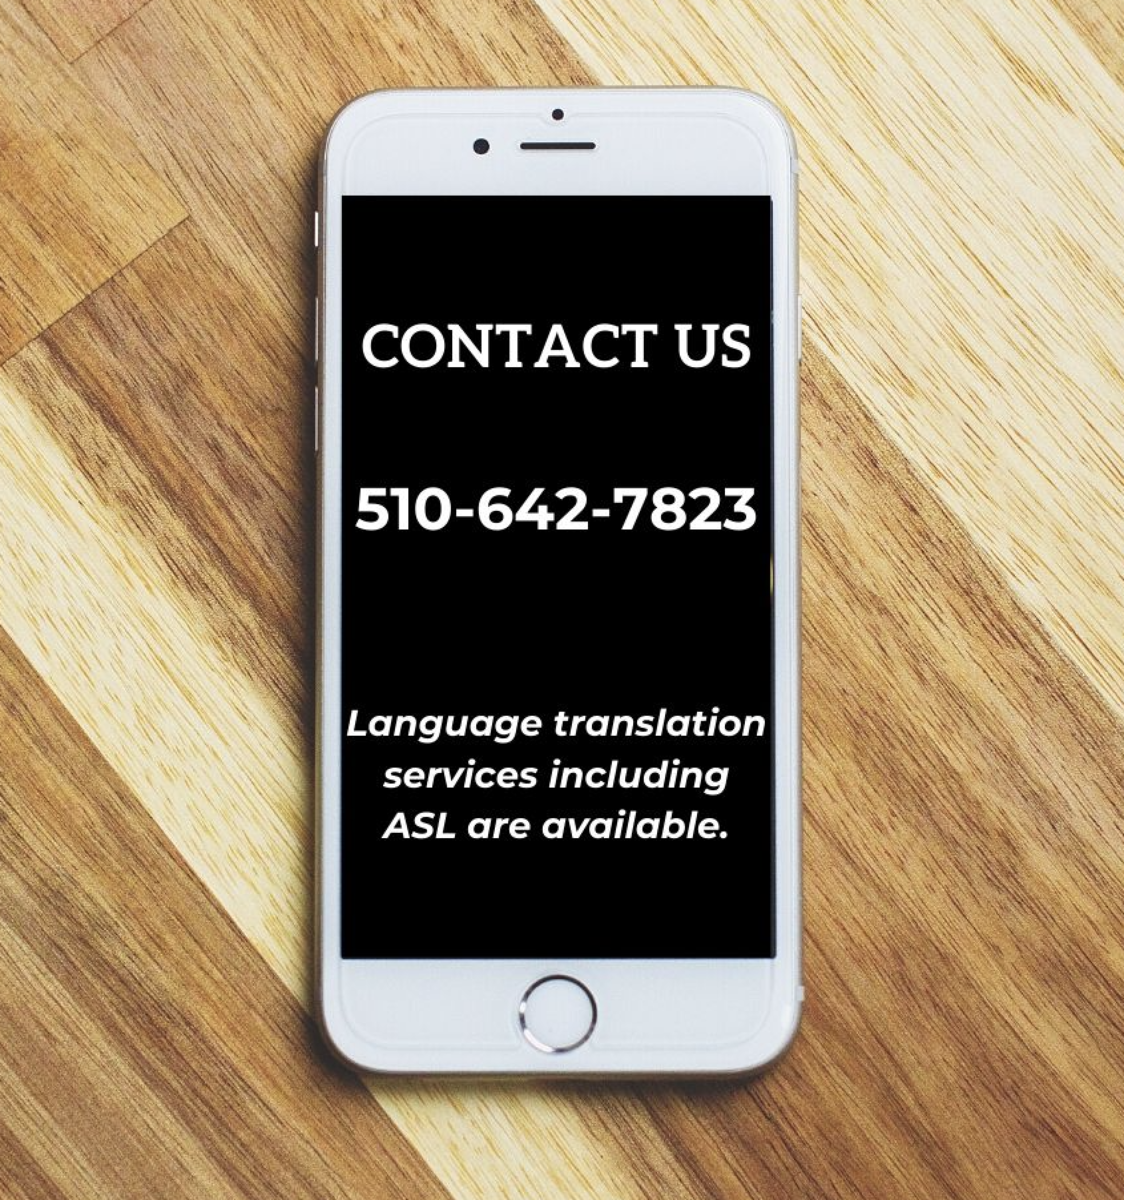 Contact Us- 510-642-7823. Language translation services including ASL are available.